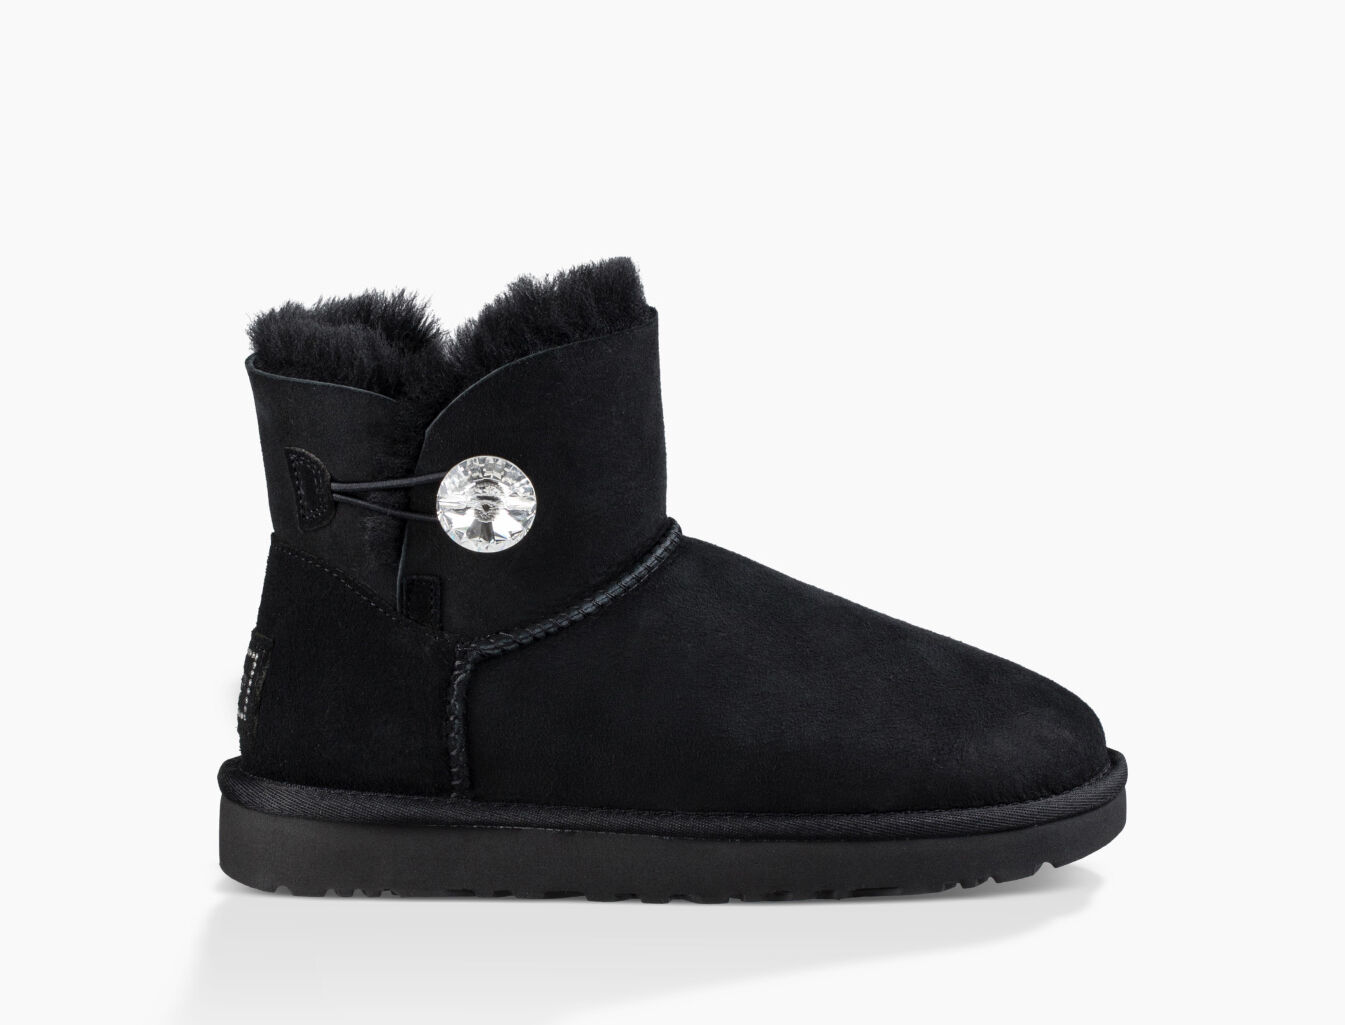 UGG Boots Womens - UGG Mini Bailey Button Bling Black